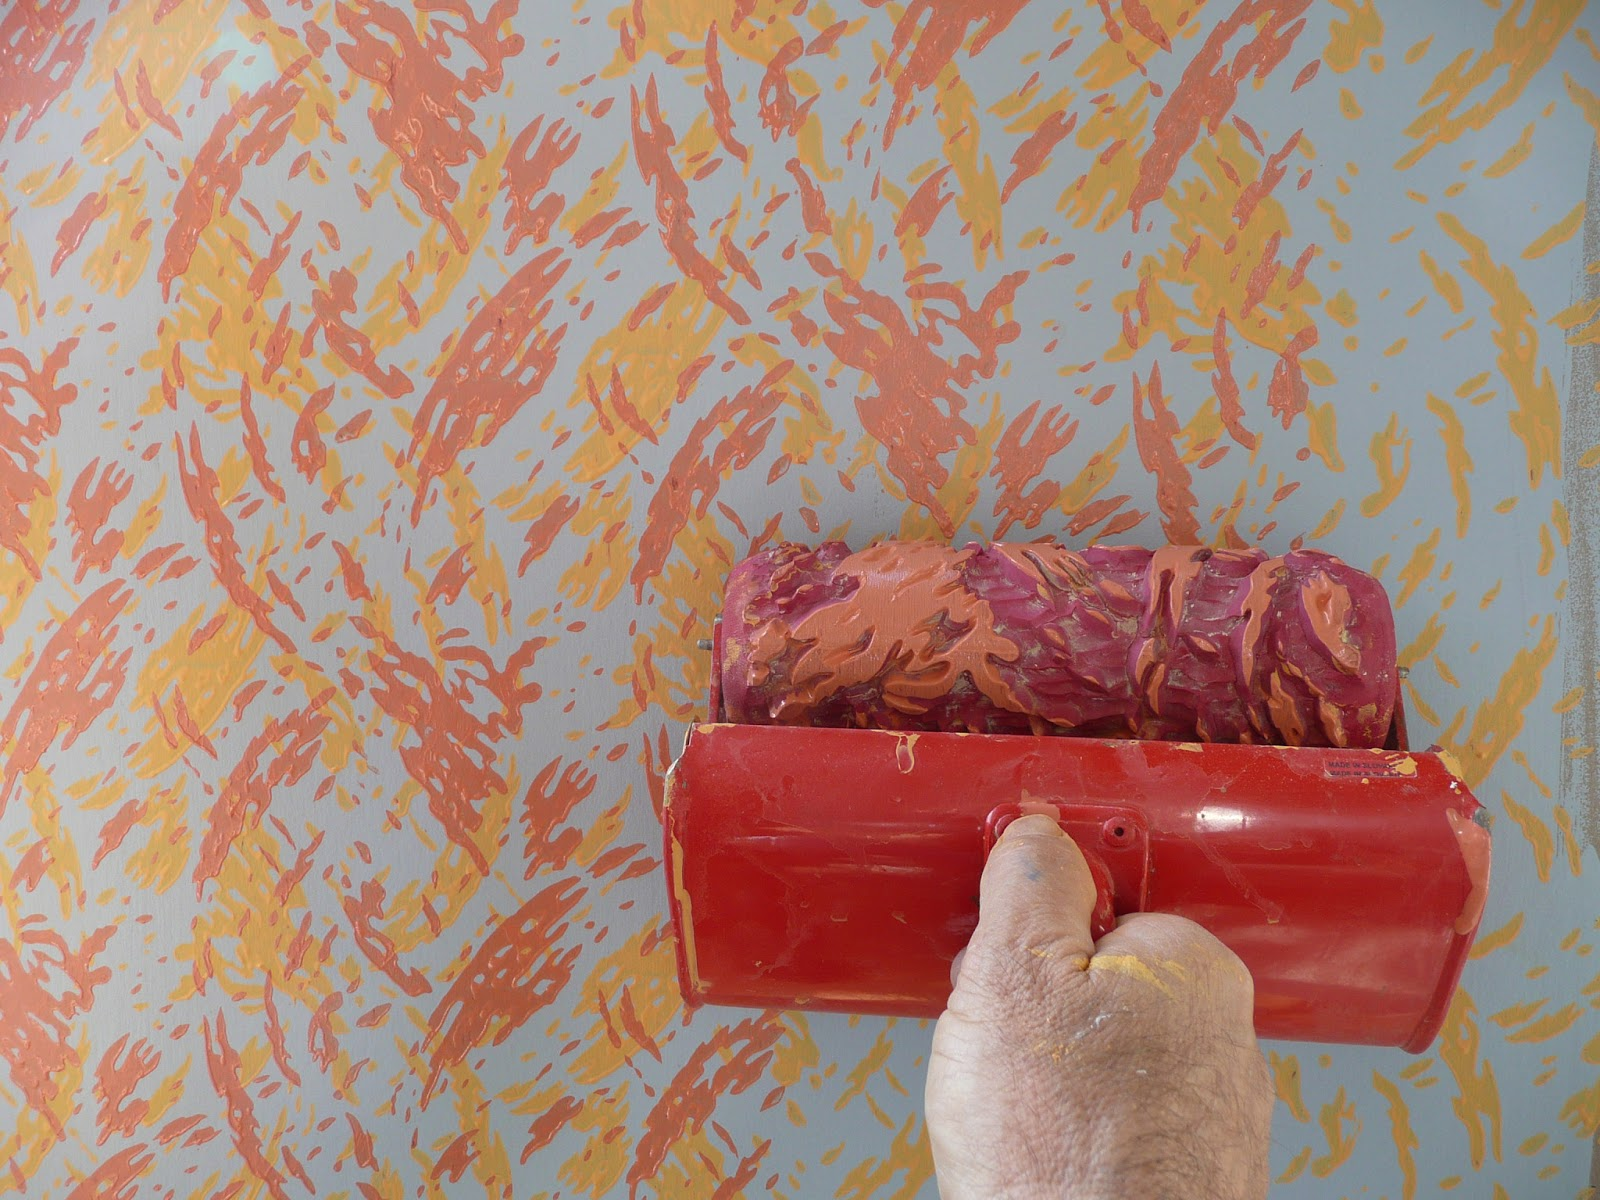 Decoroll: A painting idea with decorative paint rollers Decoroll